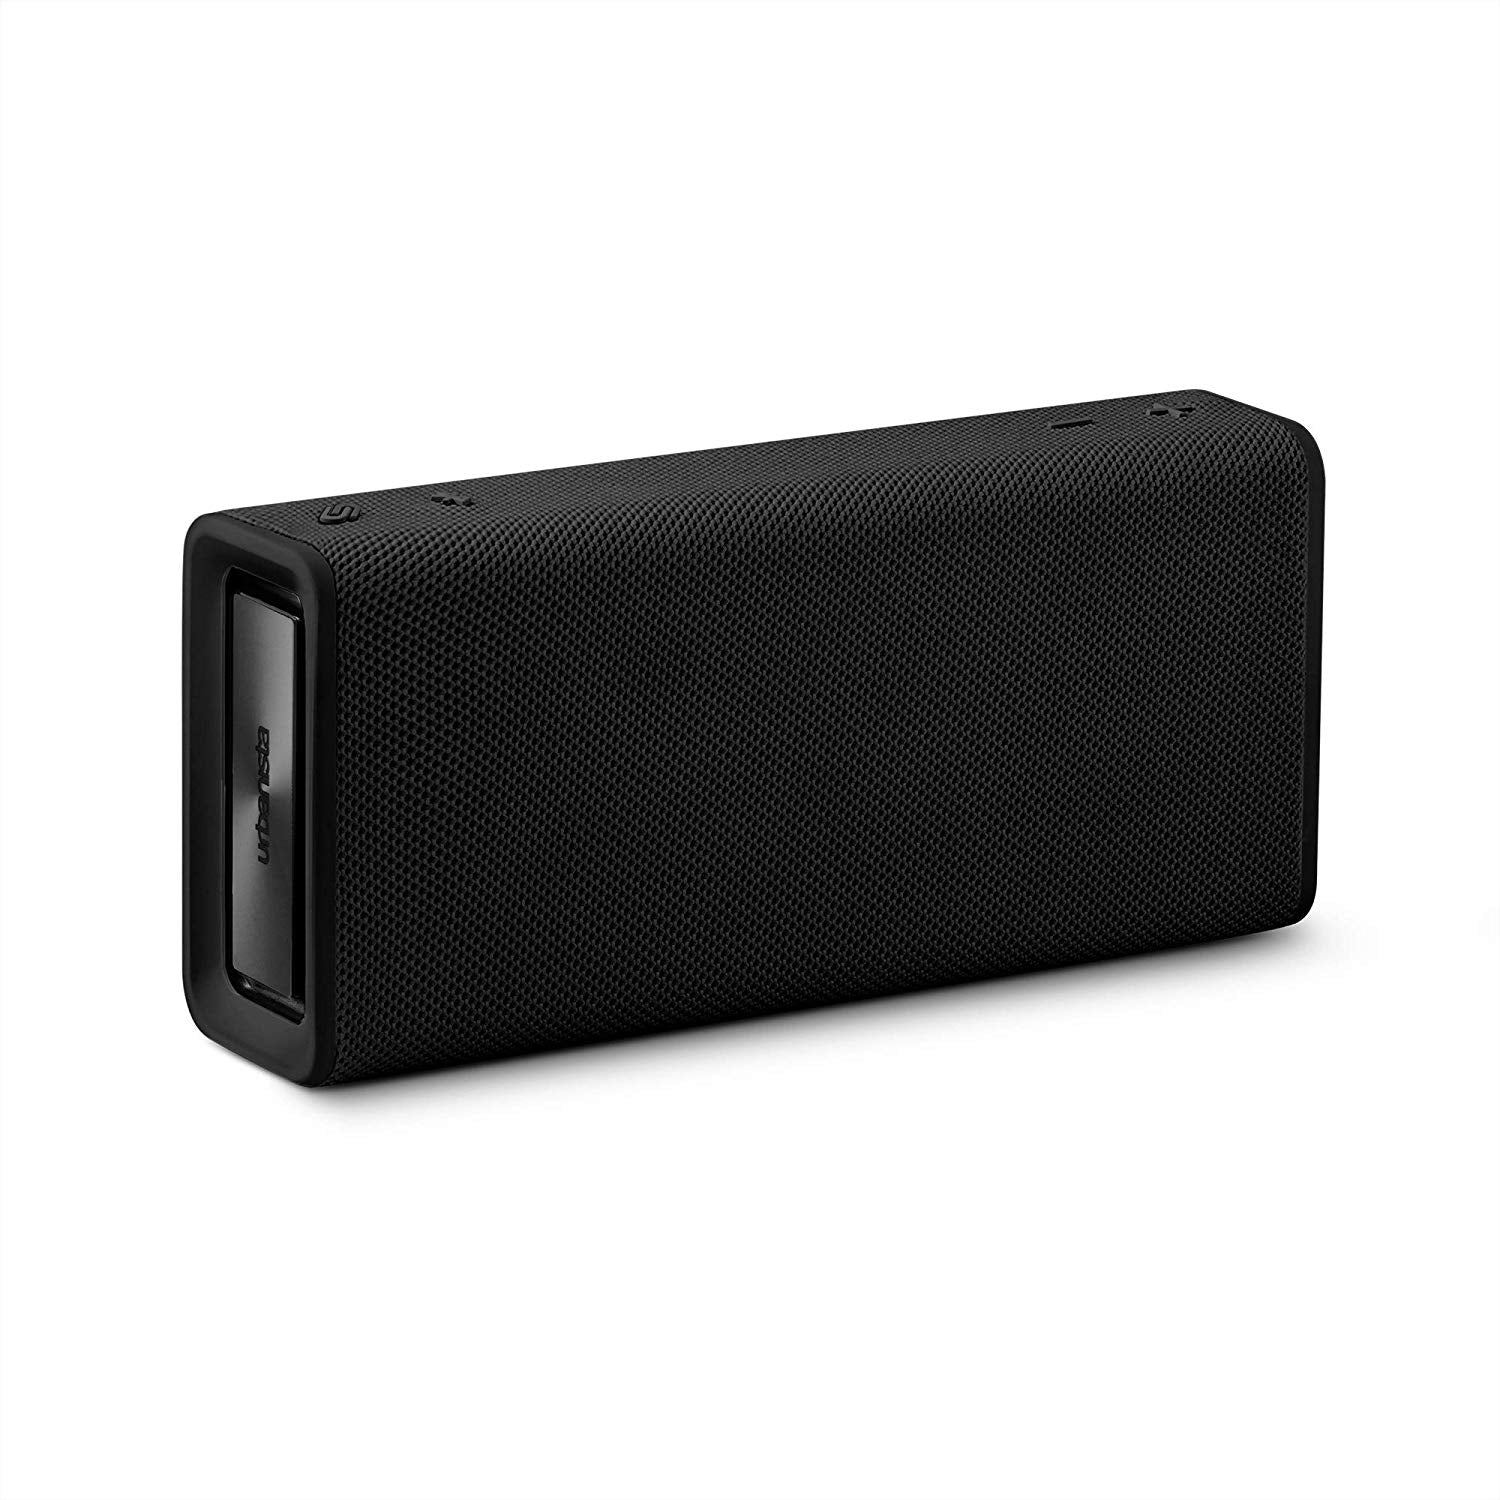 Urbanista Brisbane Wireless Bluetooth Speaker: Black [Tech & Turntables]